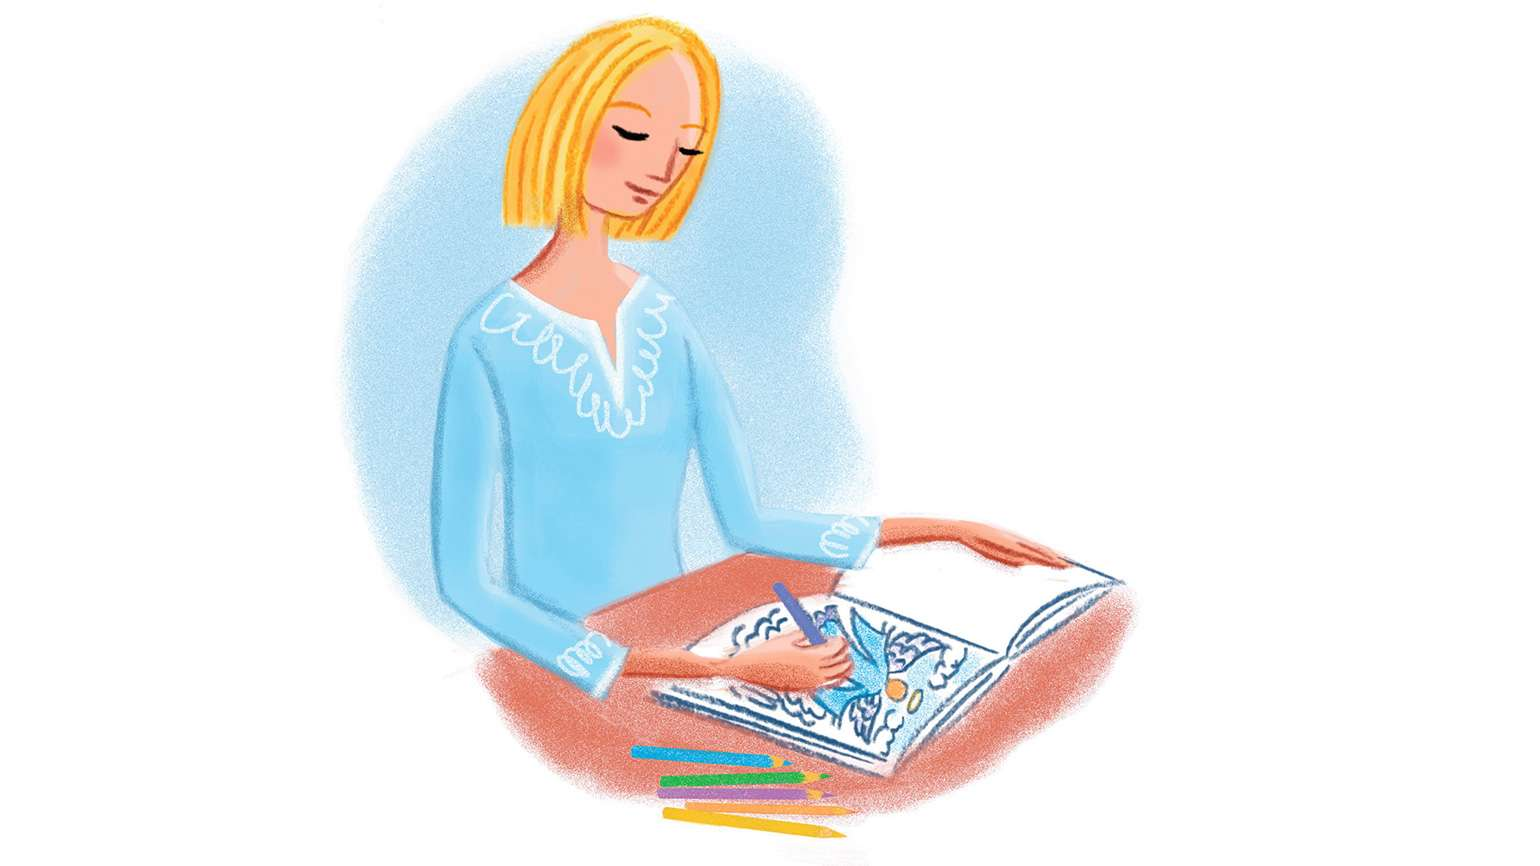 A young woman smiles serenely as she colors in a coloring book